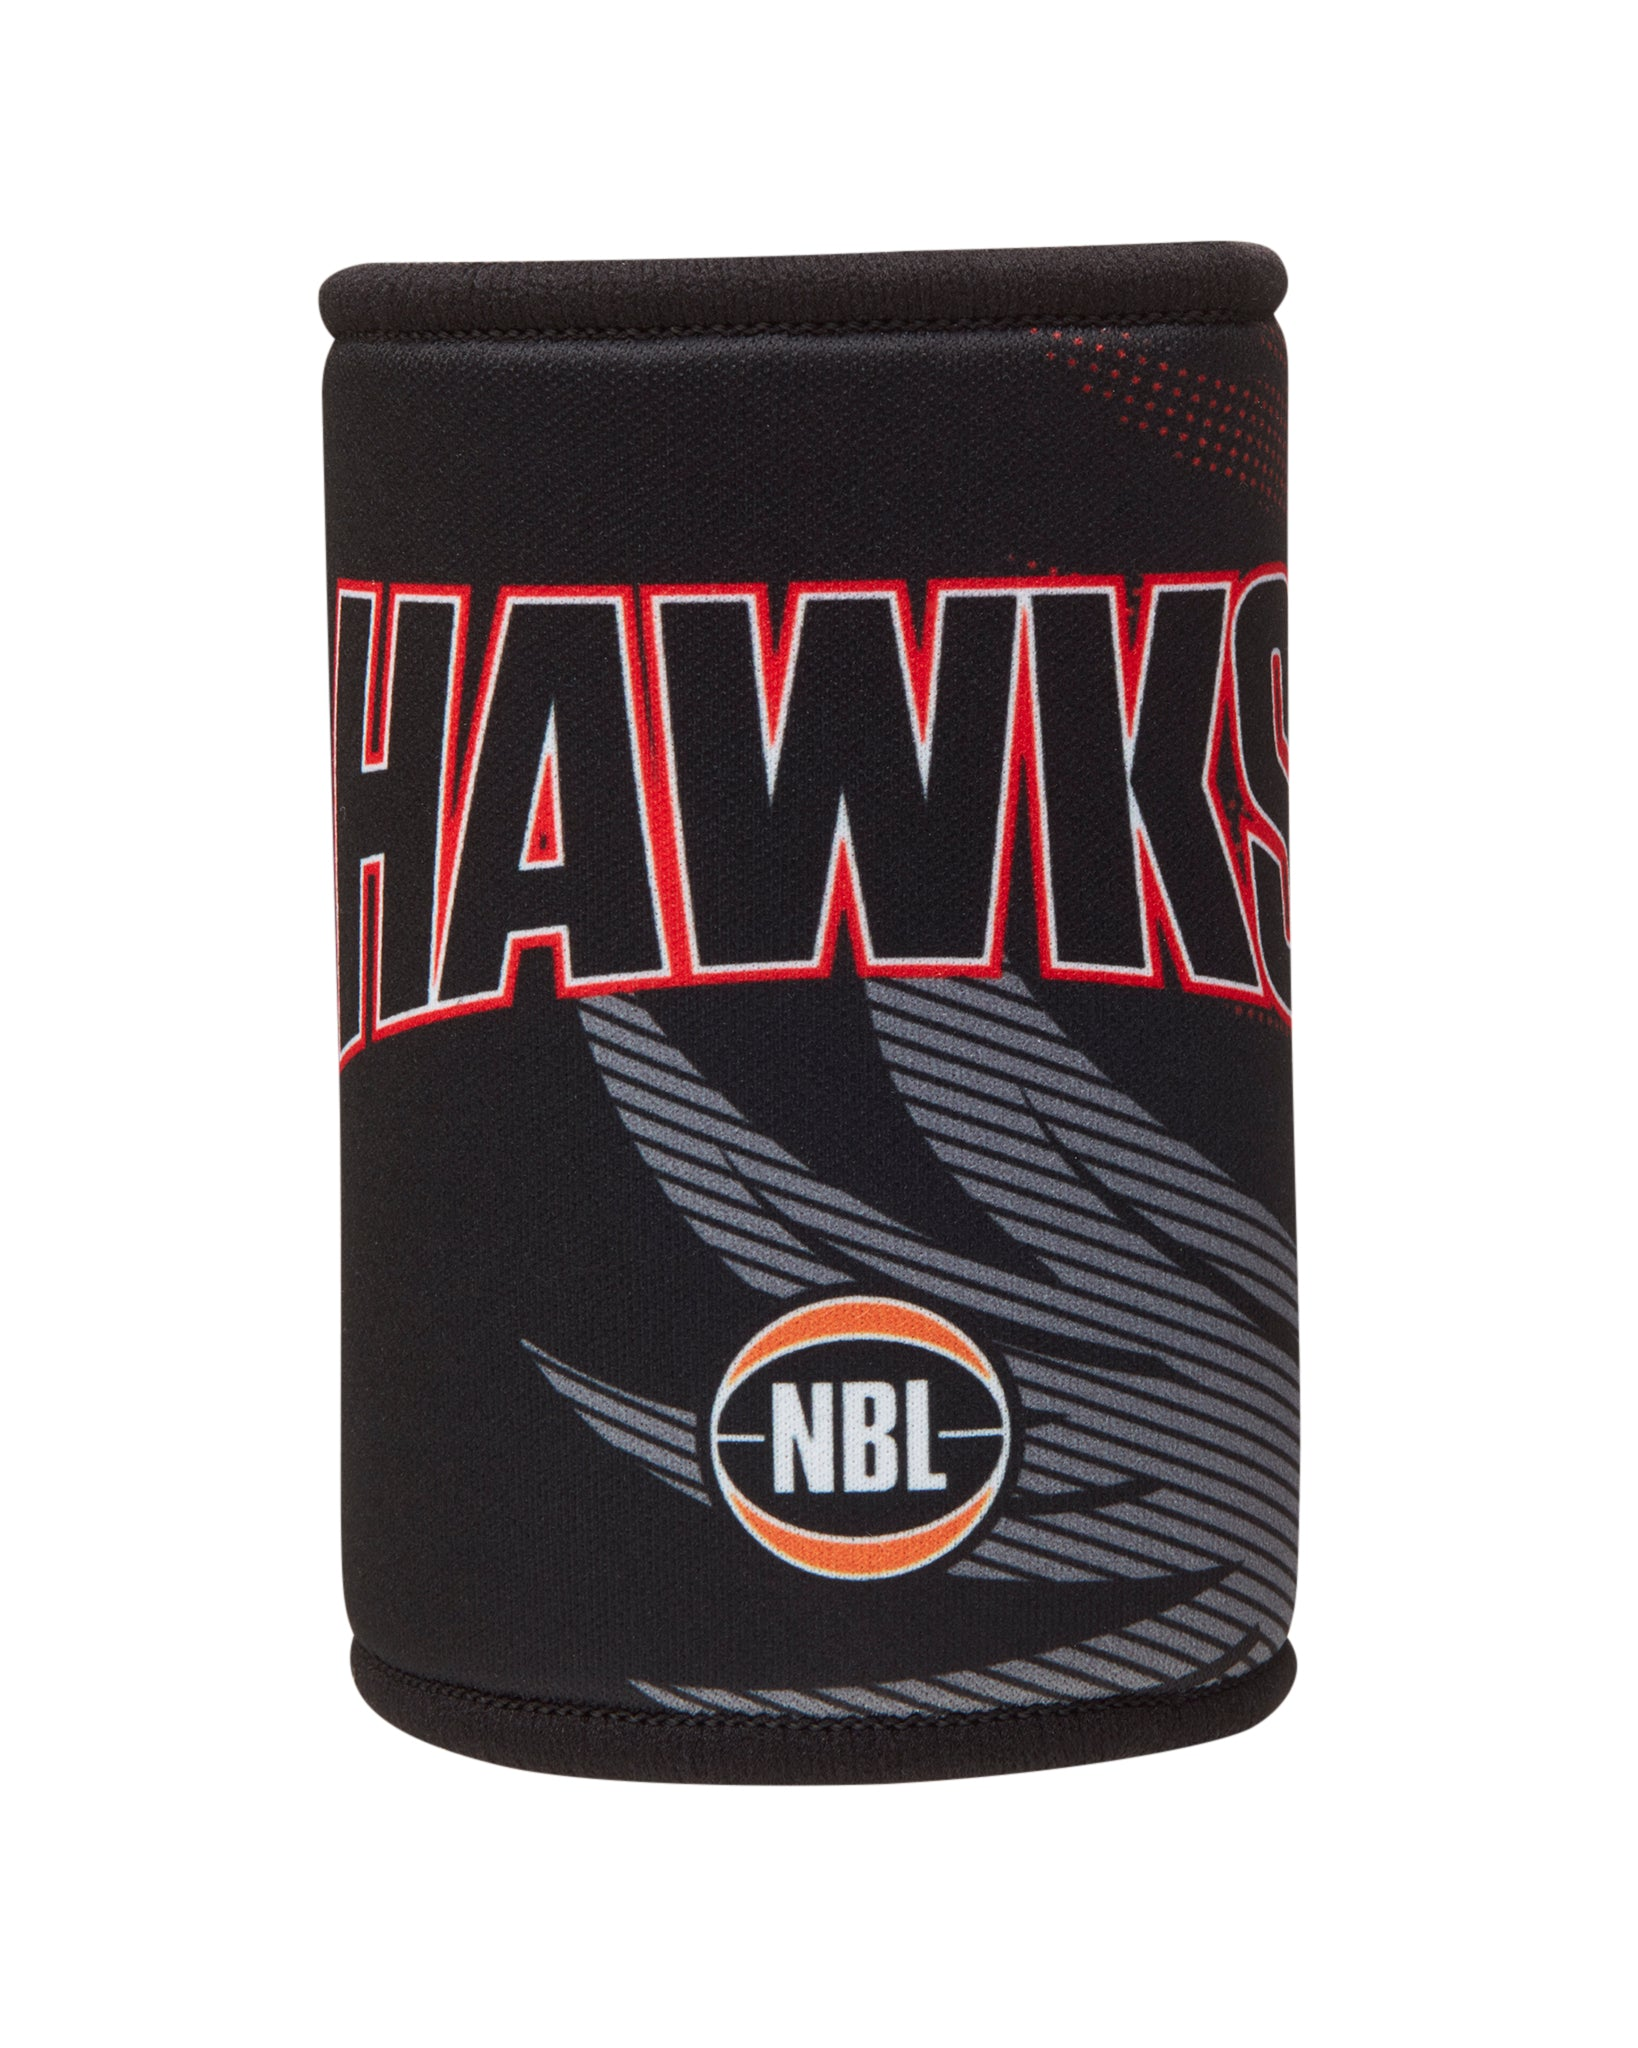 Illawarra Hawks 19/20 Official NBL Can Cooler